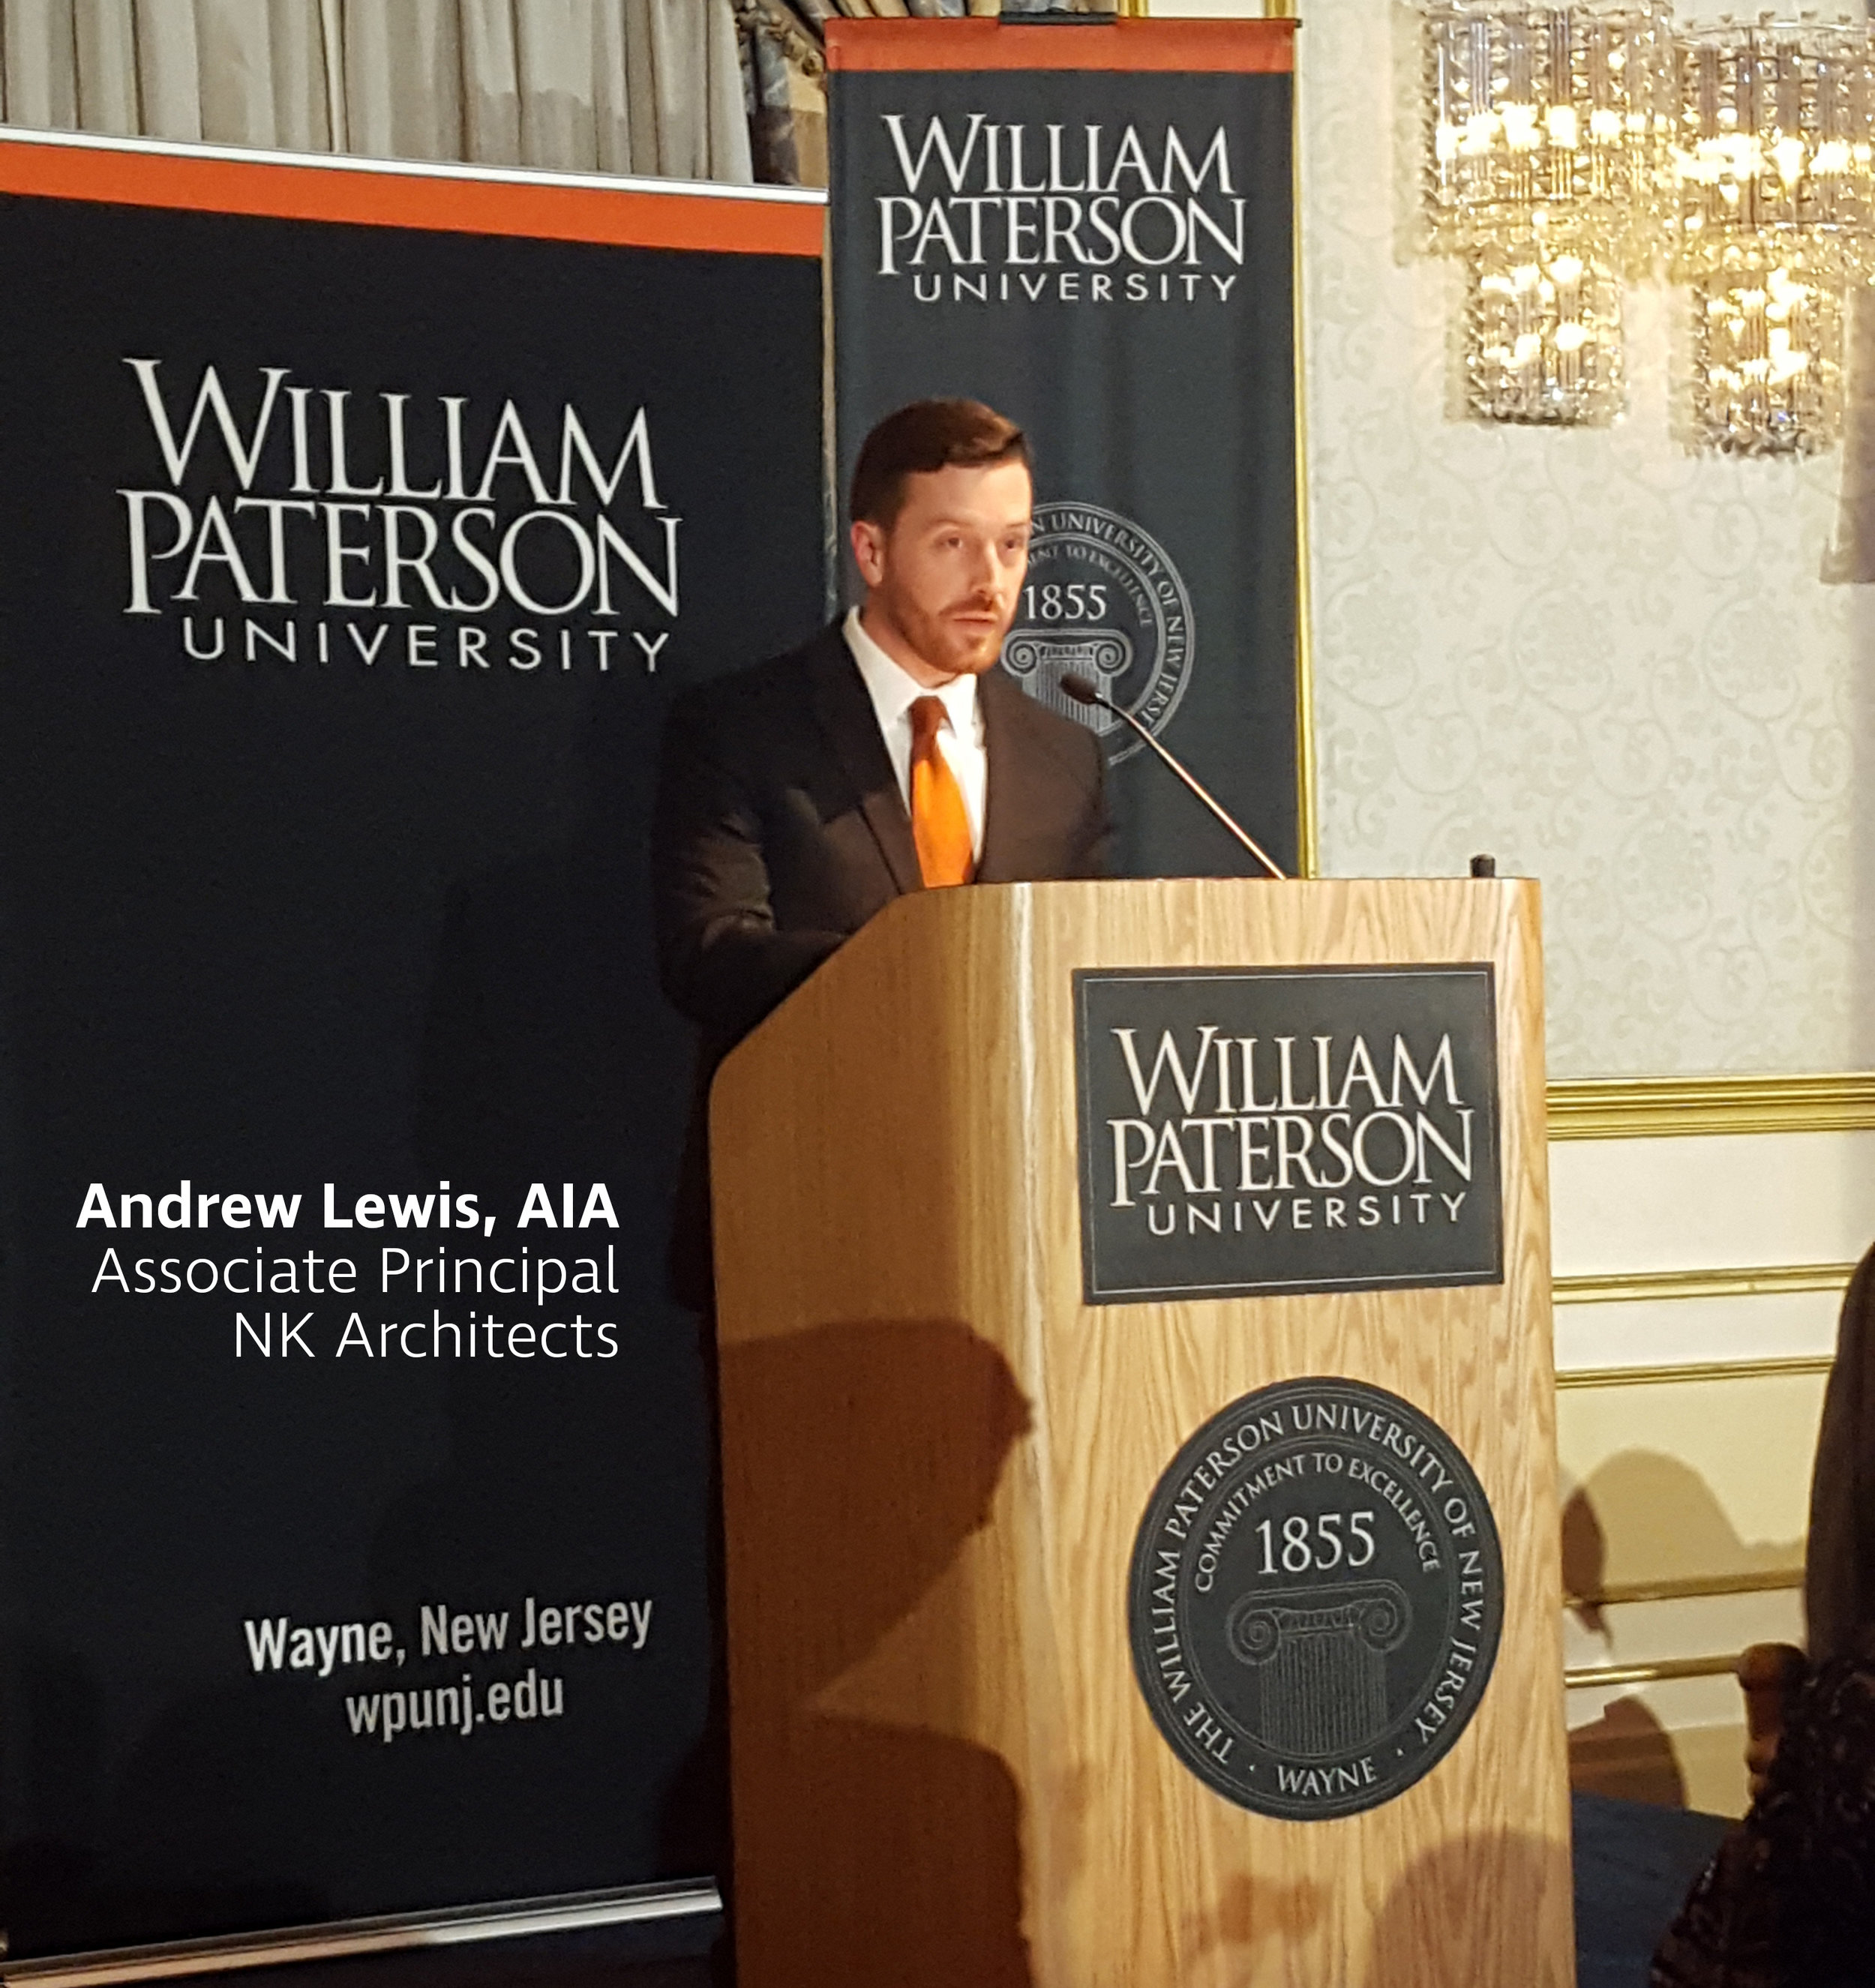 Andrew Lewis, AIA advocates the relationship between William Paterson University and NK, that enabled the success of University Hall - New College of Science & Health Building and Hunziker Hall & Preakness Hall renovations.